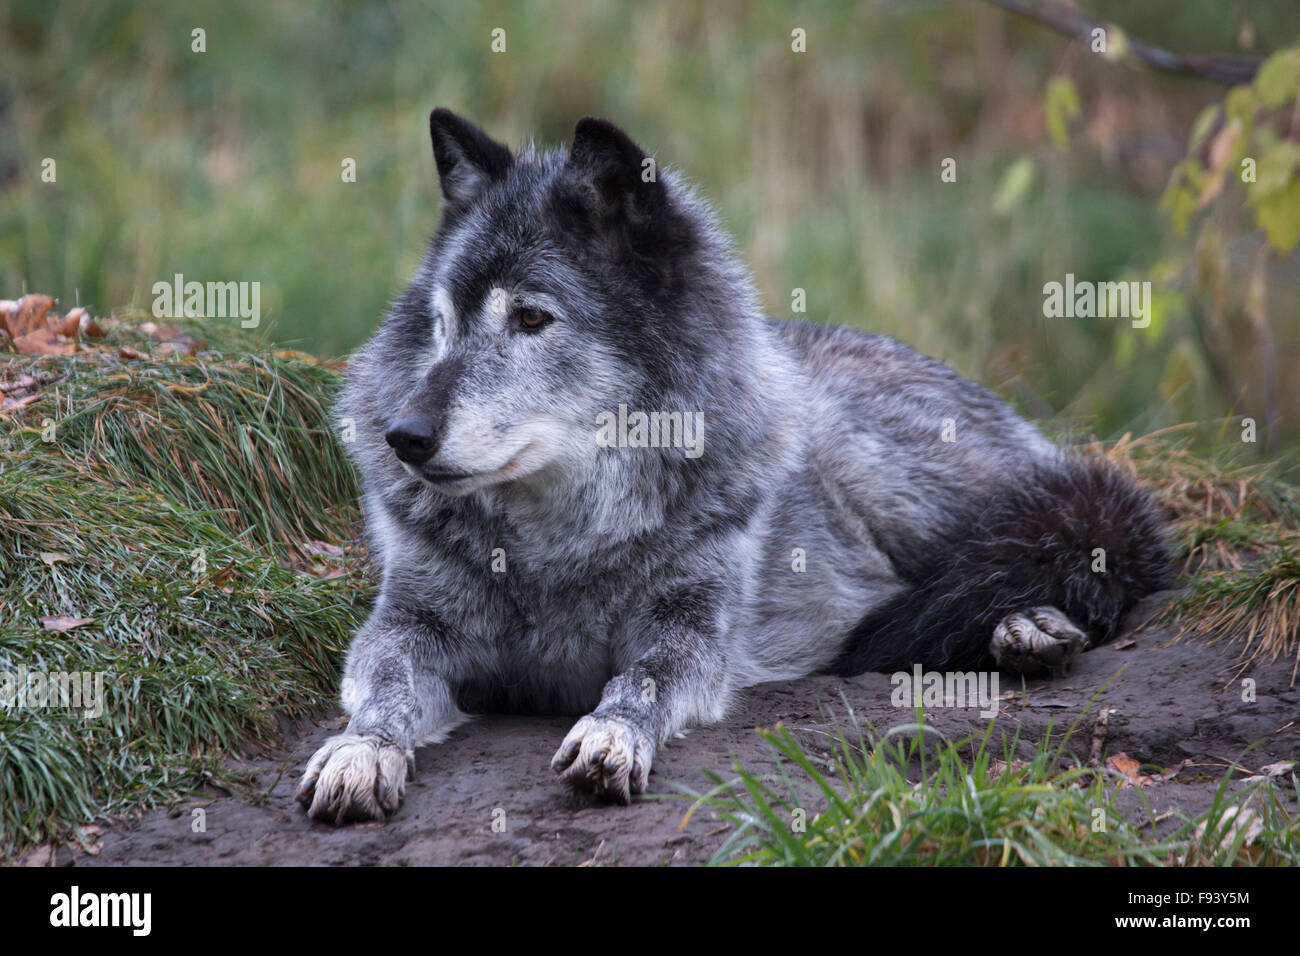 Grey wolf (Canis lupus) in Canadian Wilds zoo exhibit - Stock Image